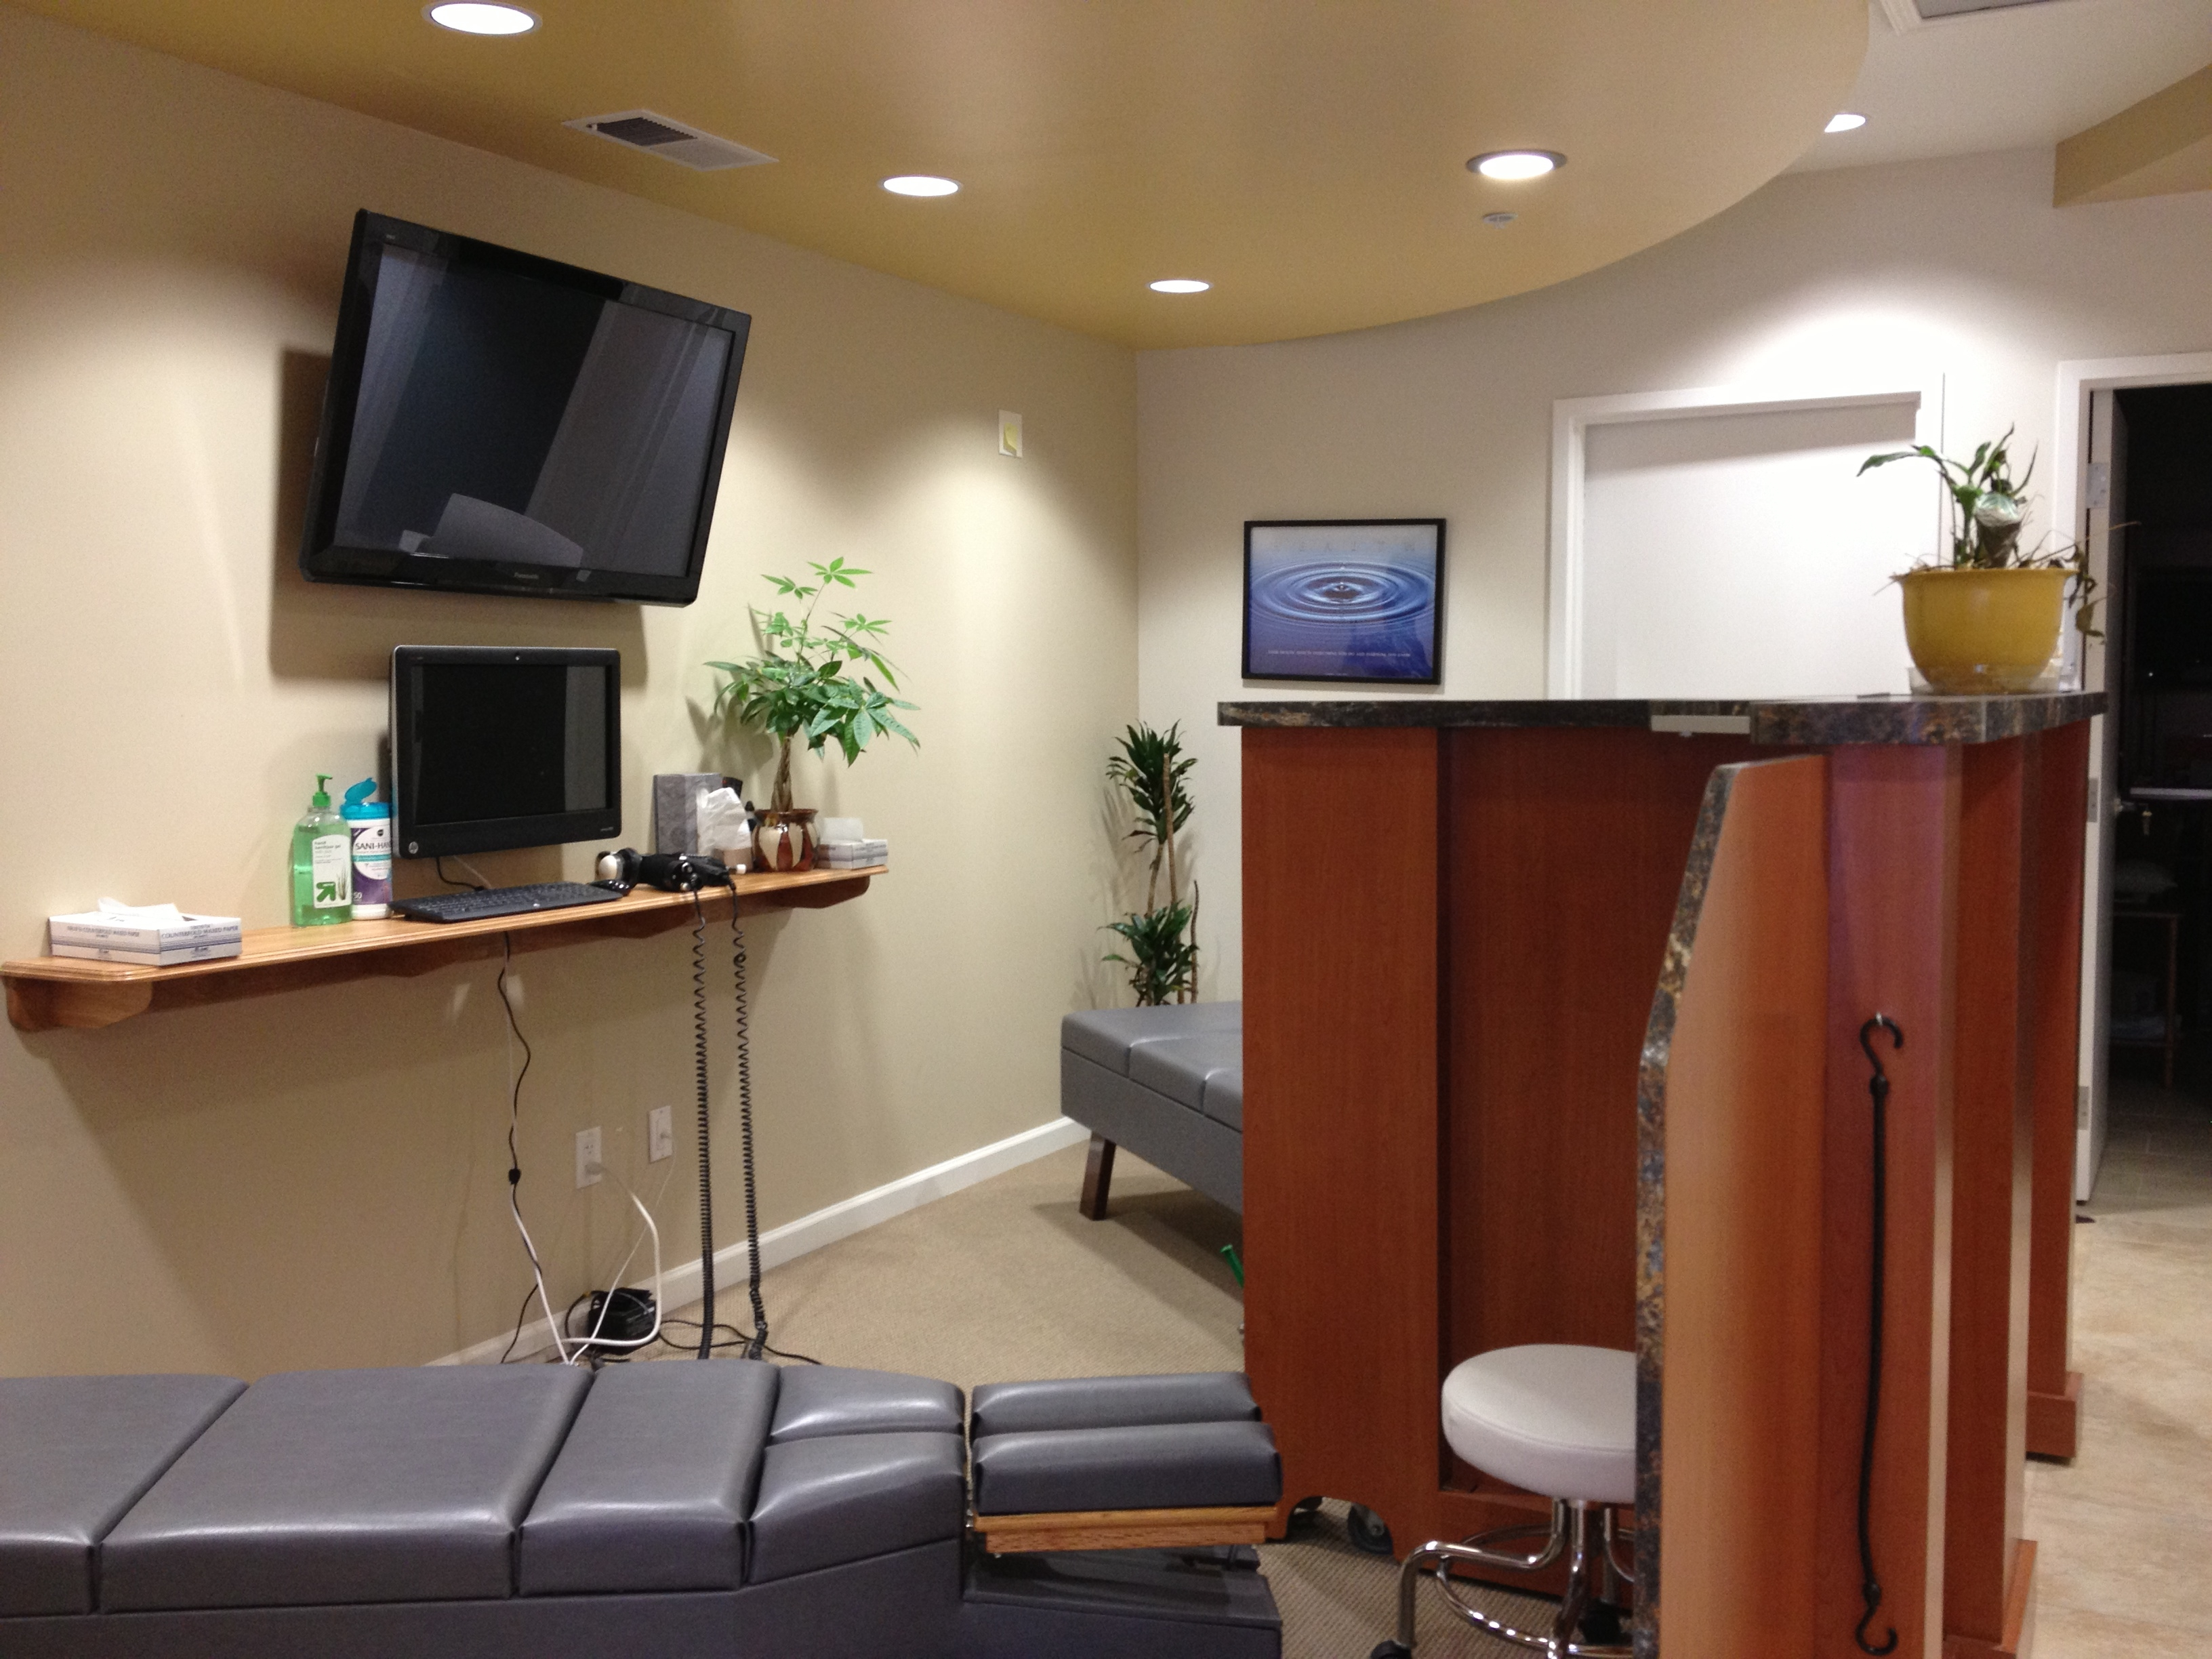 Cupertino Chiropractic Center - ad image